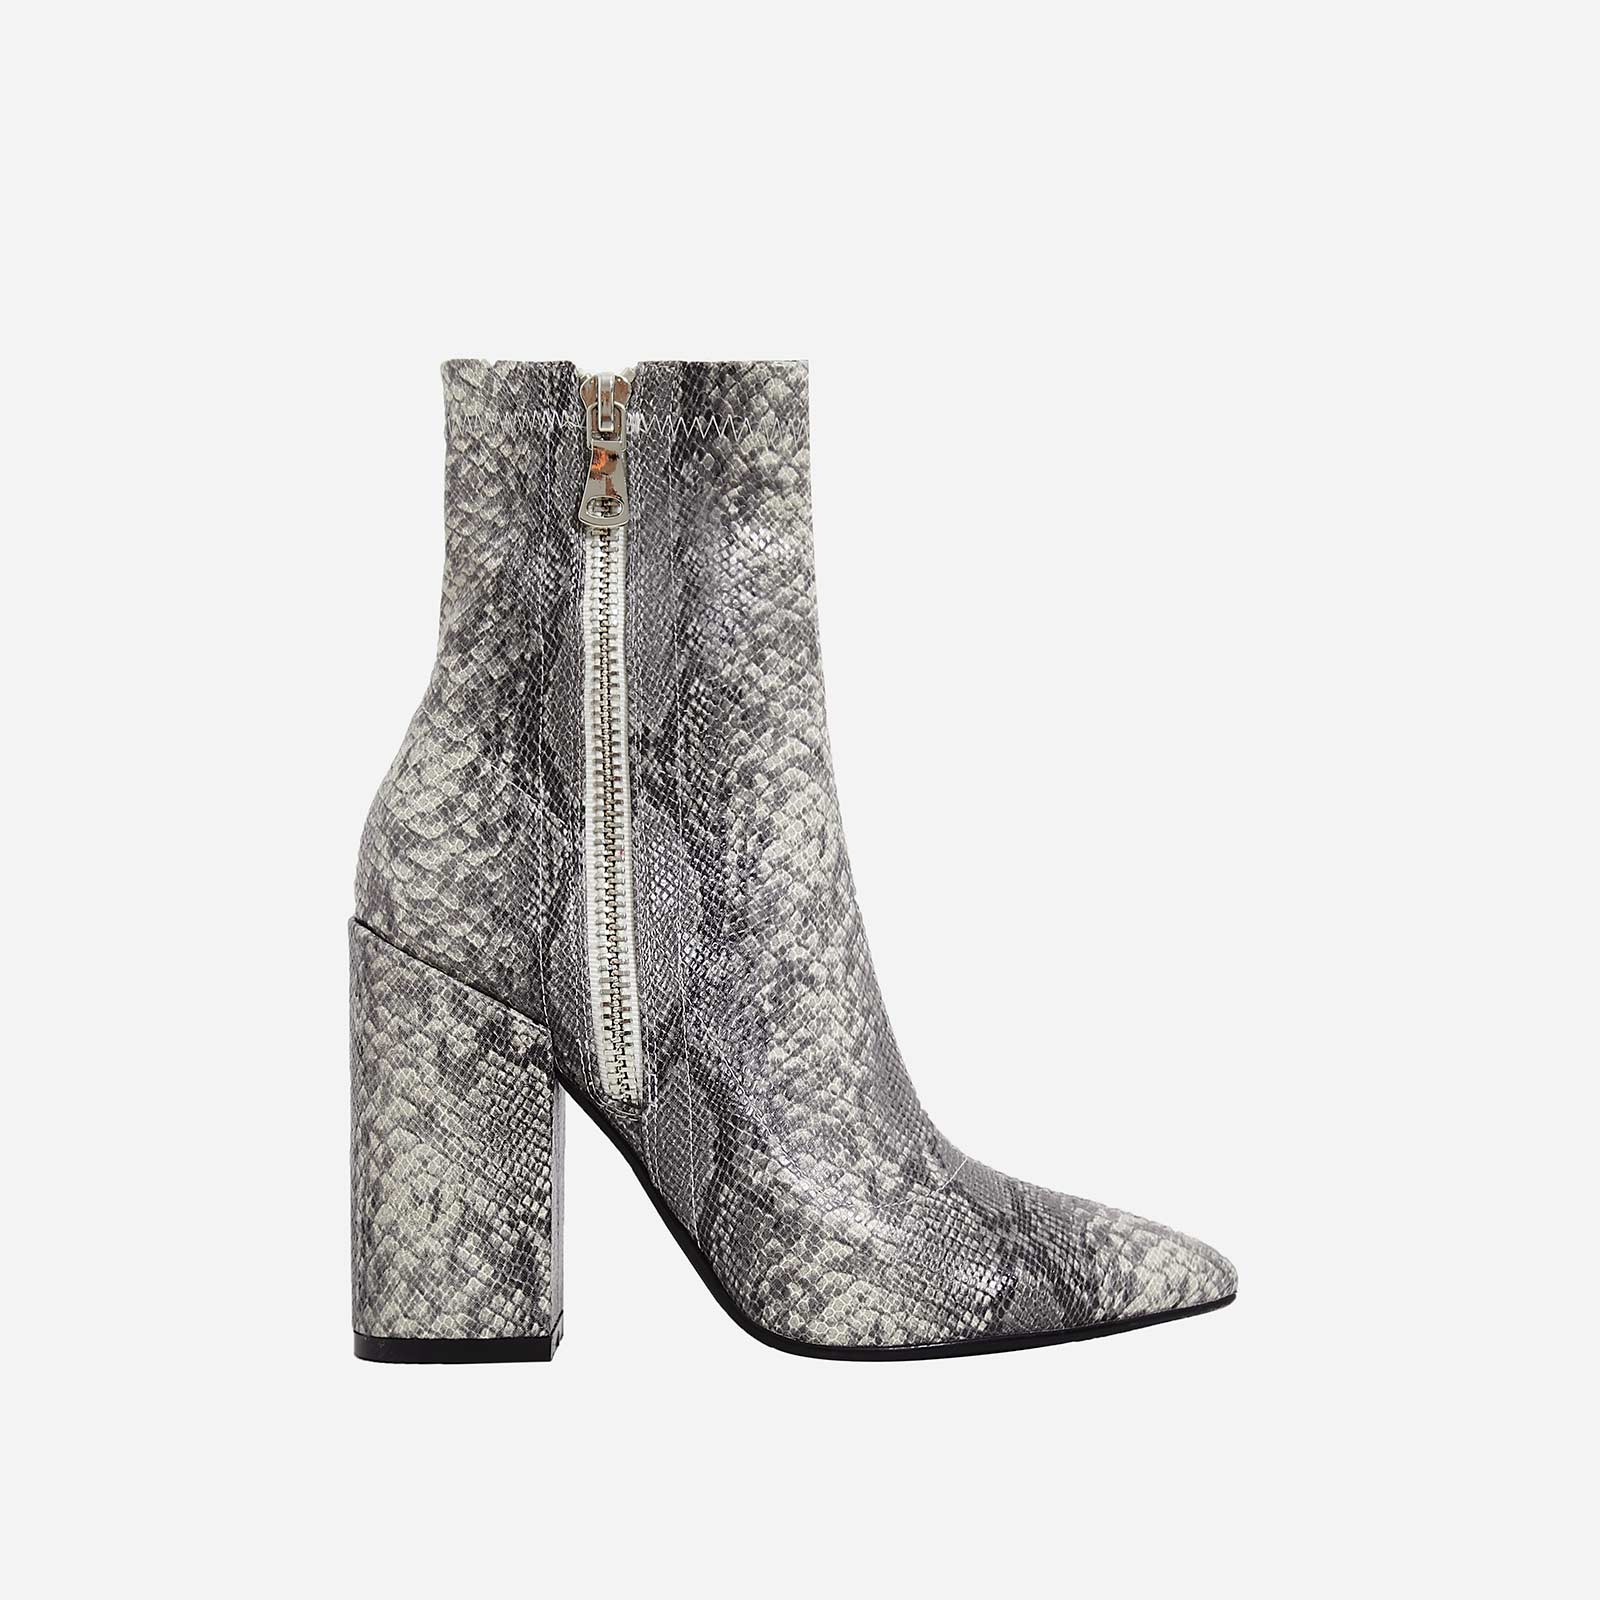 Lucian Block Heel Ankle Boot In Grey Snake Print Faux Leather